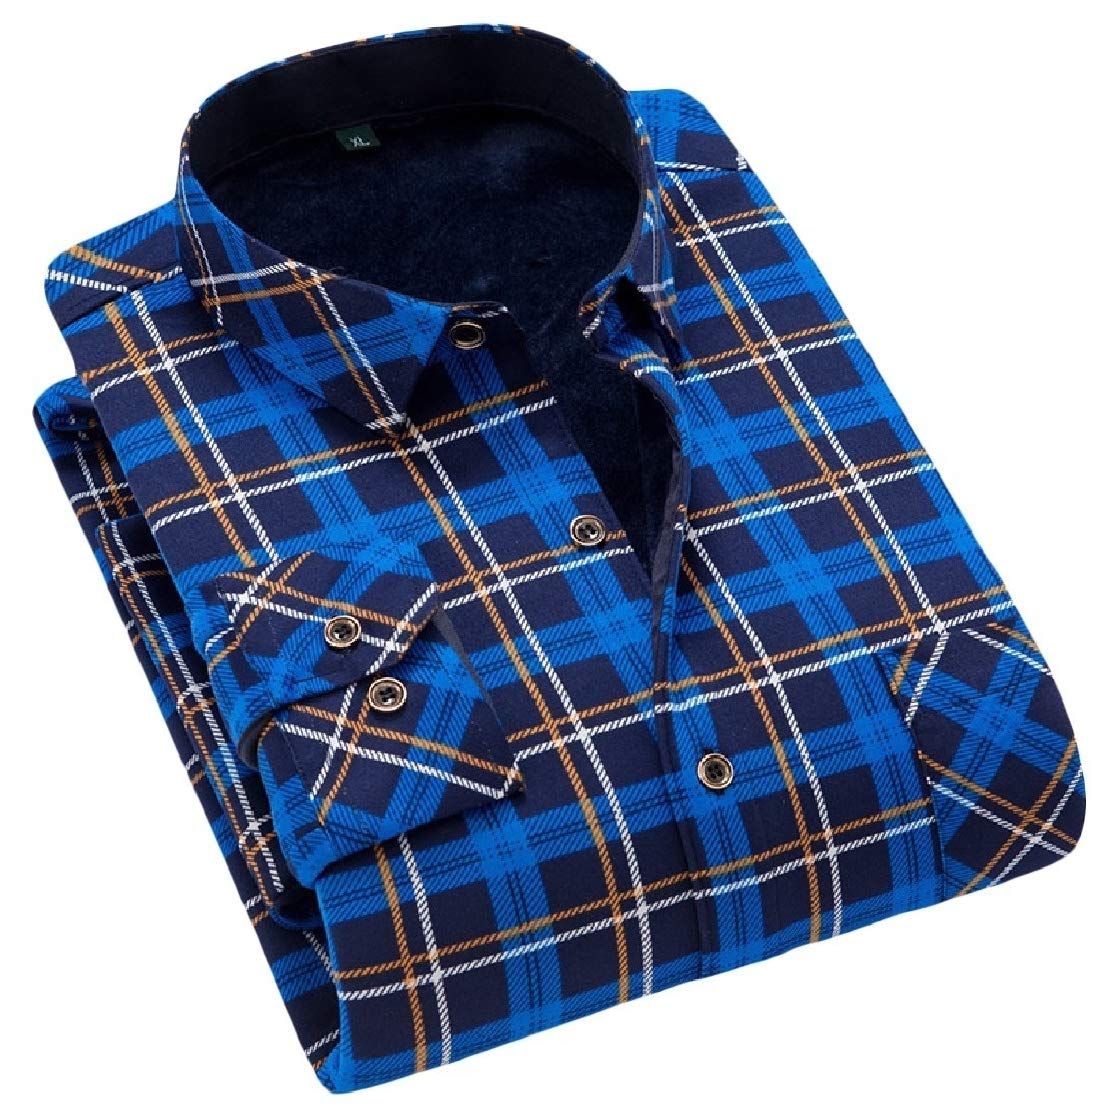 YUNY Mens Thicken Open Front Trim-Fit Turn Down Collar Printed Warm Western Shirt AS17 XL